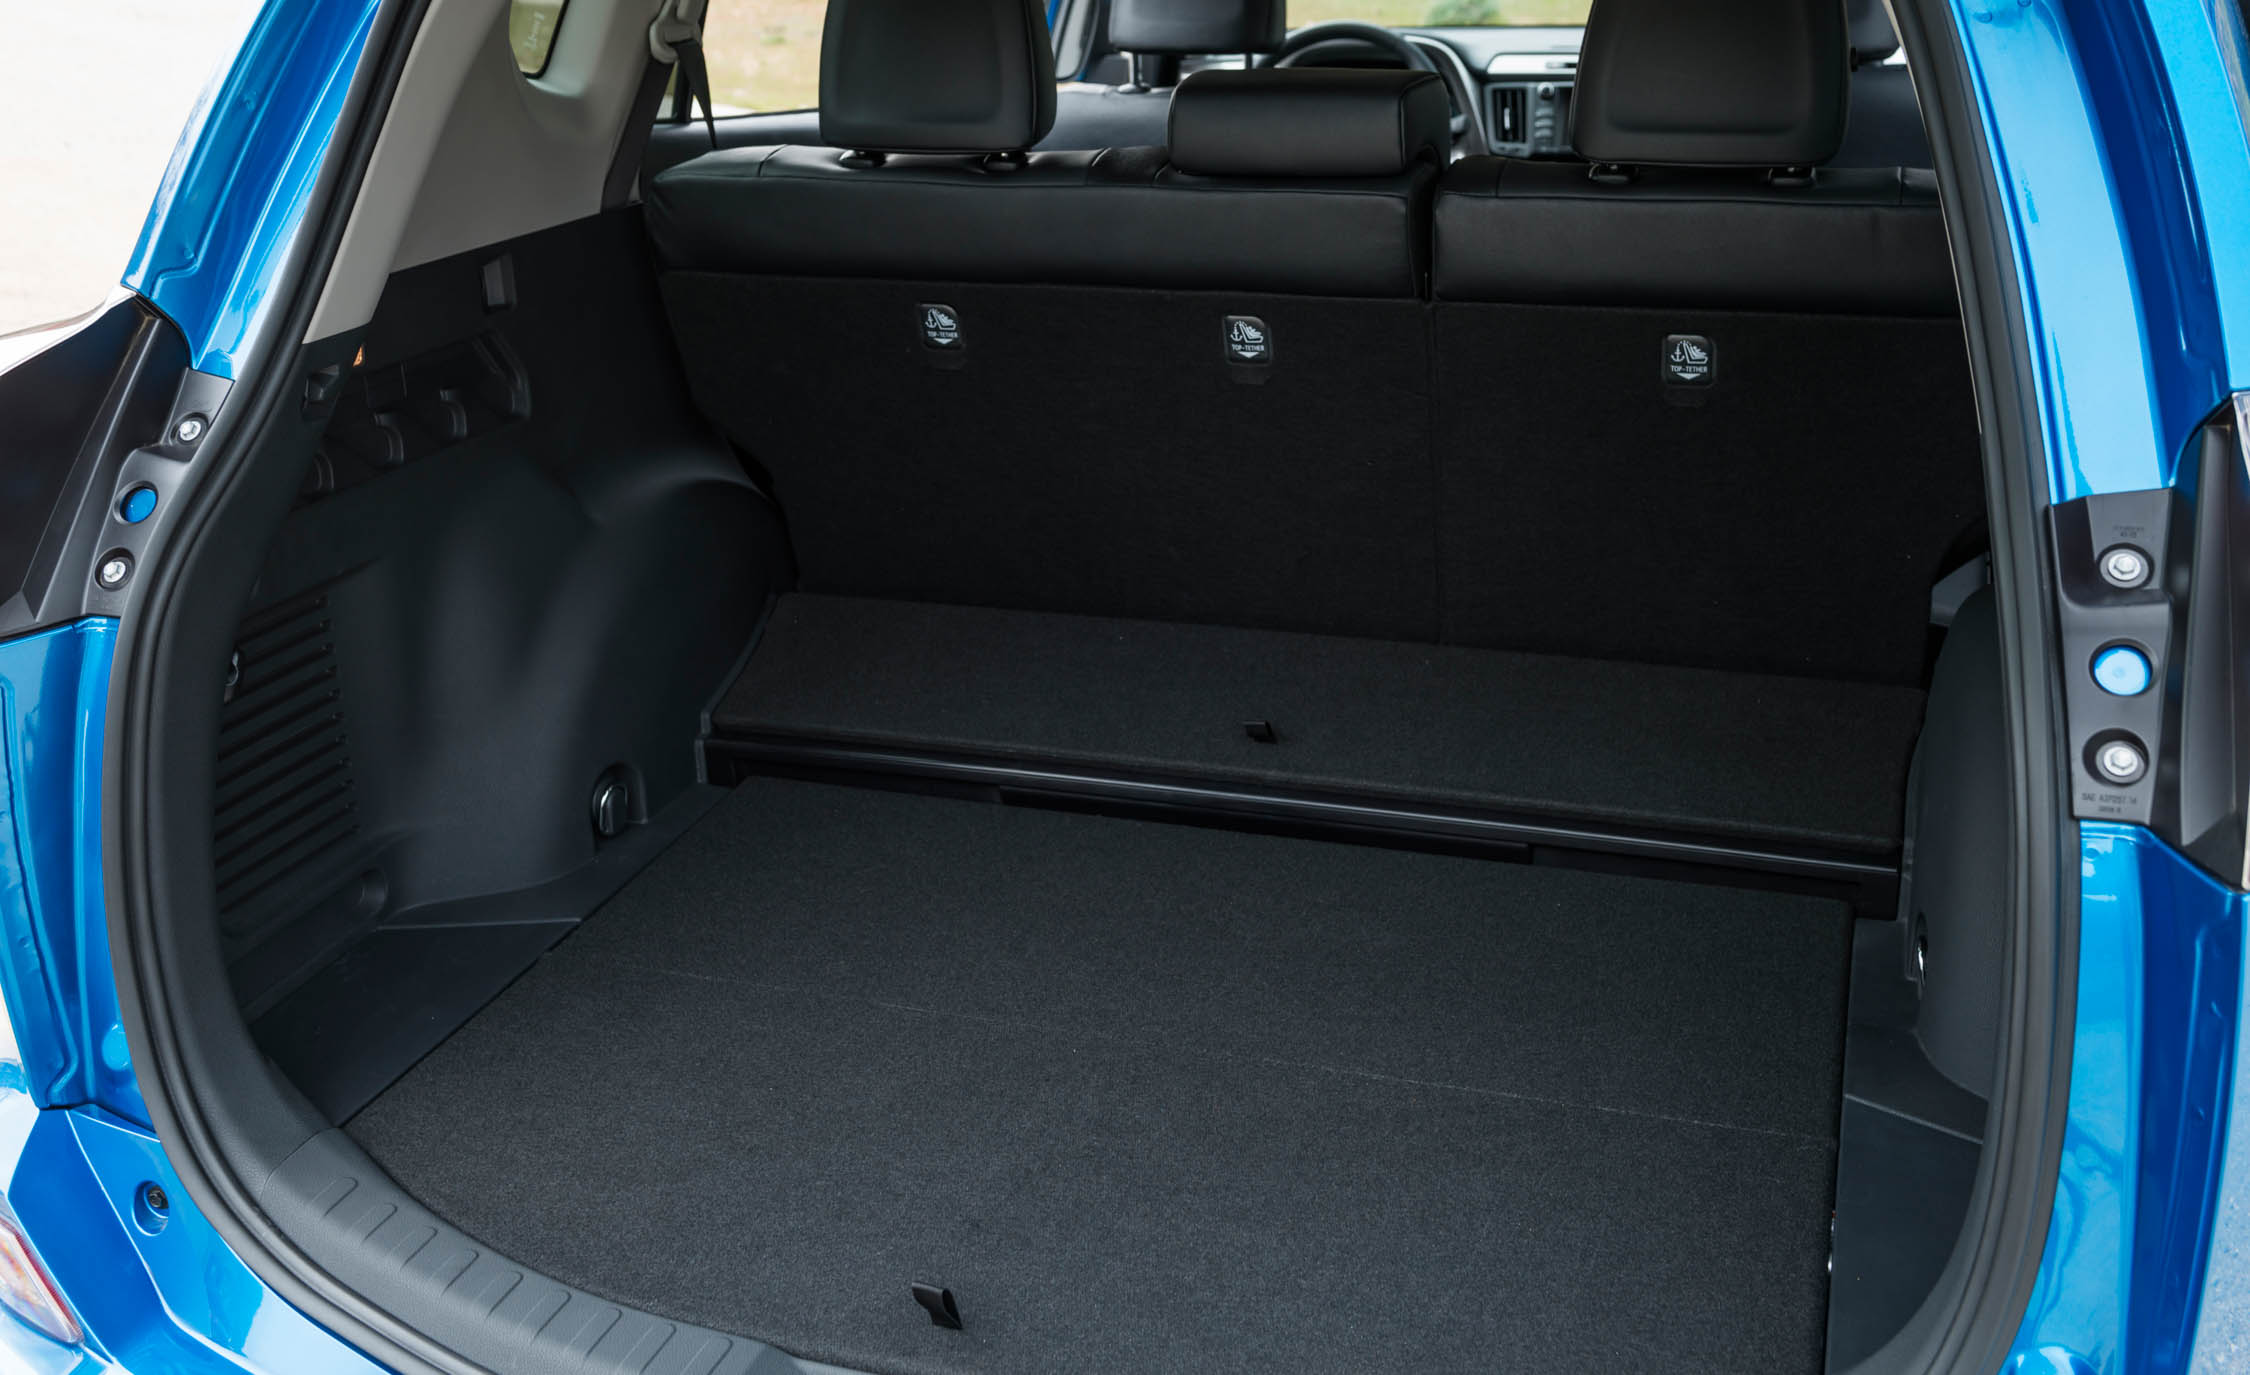 2016 toyota rav4 hybrid interior cargo space 8268 cars. Black Bedroom Furniture Sets. Home Design Ideas